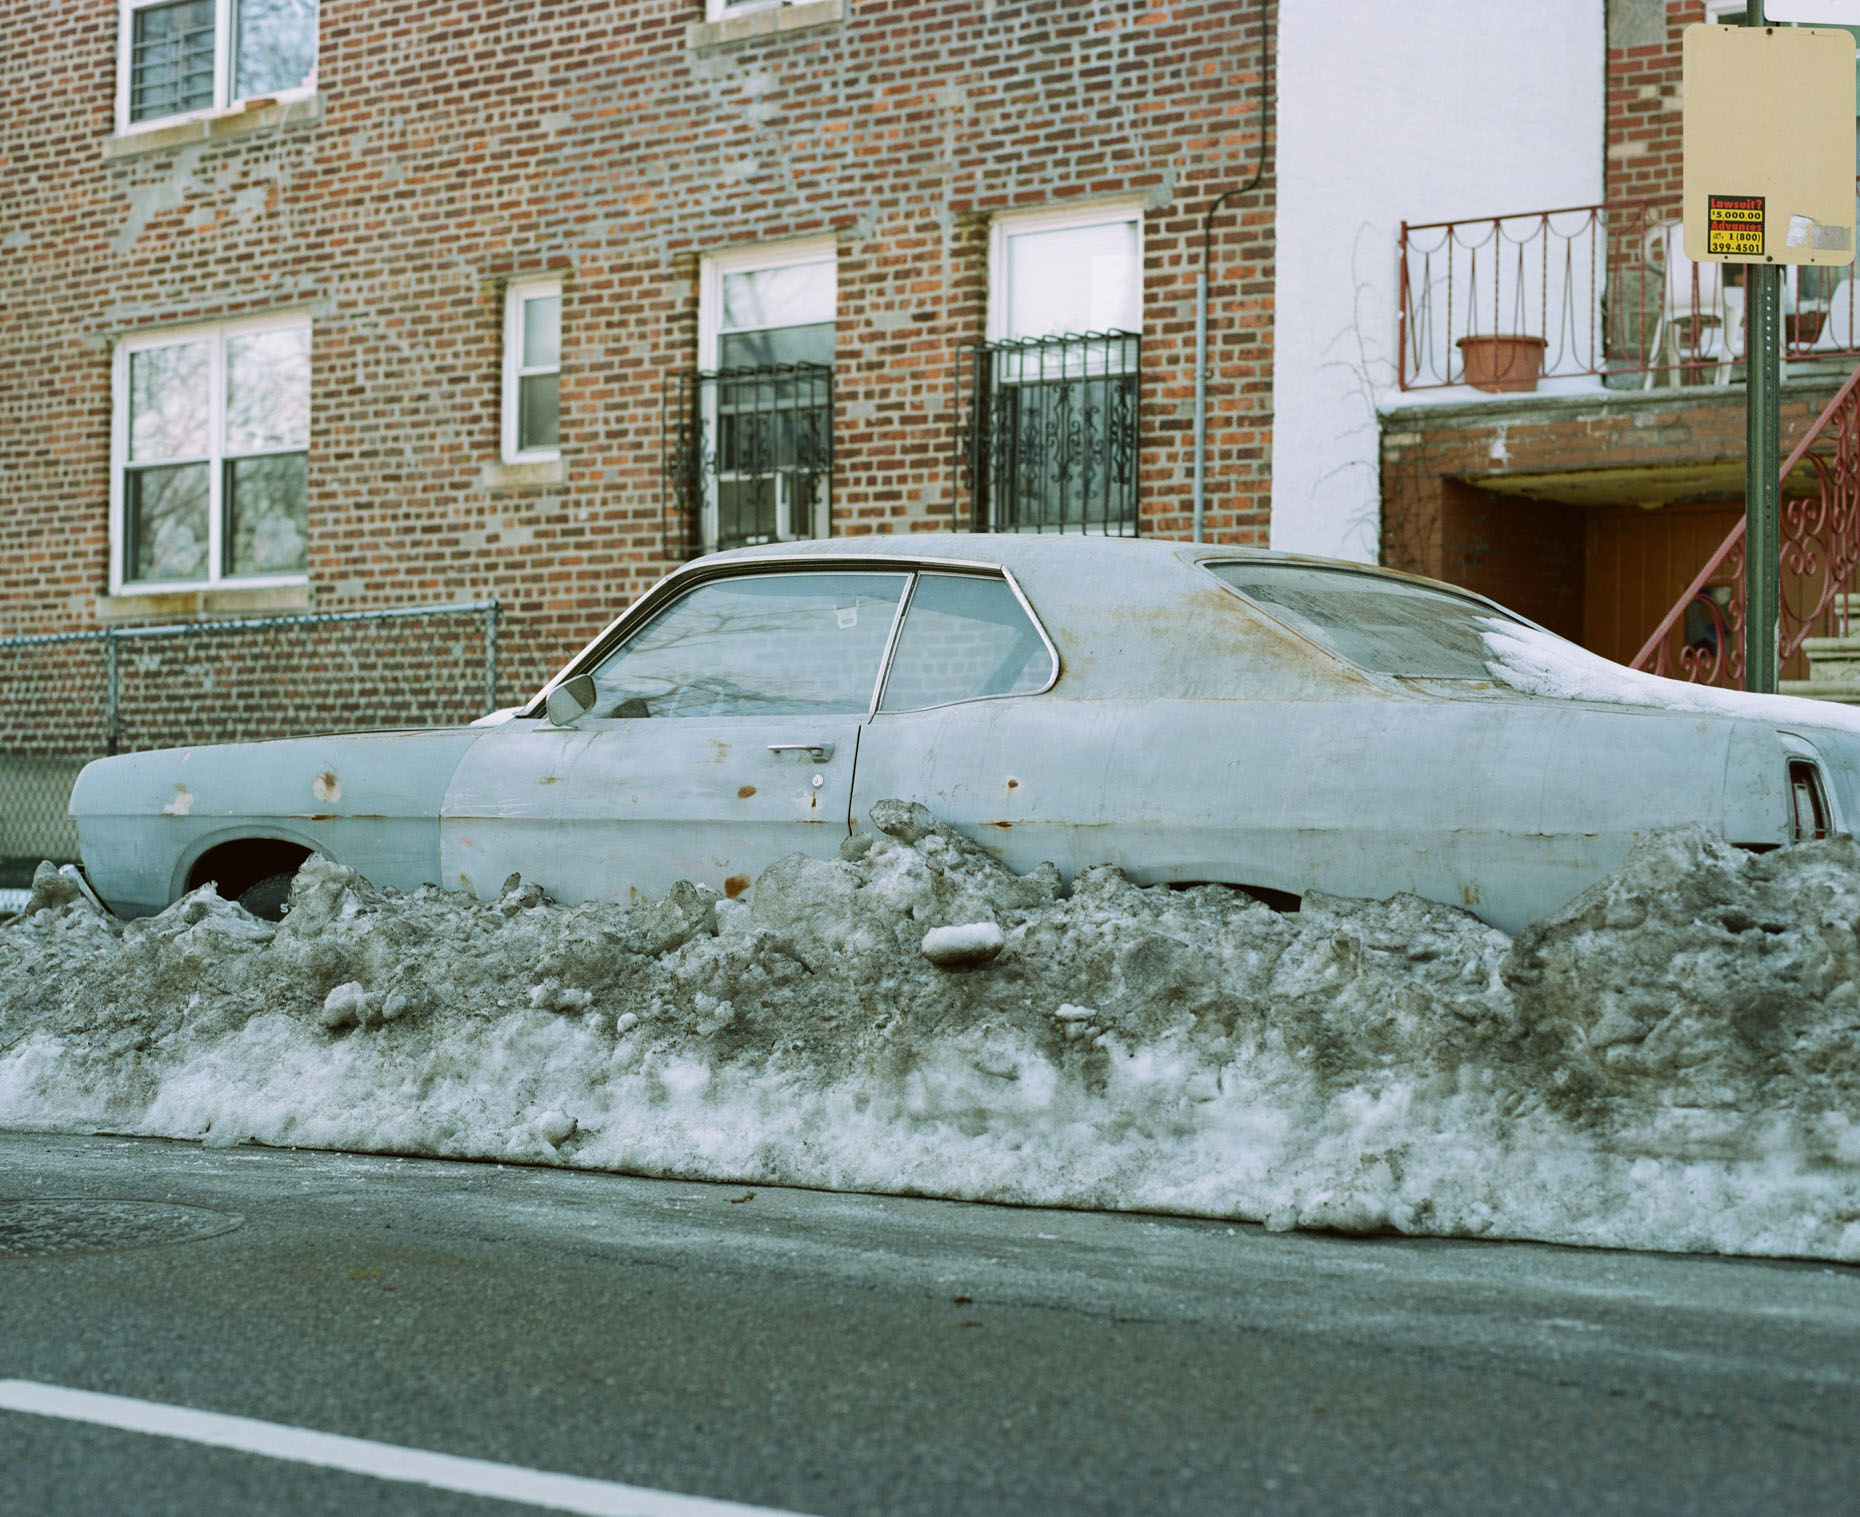 A vintage car sits surrounded by old and dirty snow in Brooklyn, New York